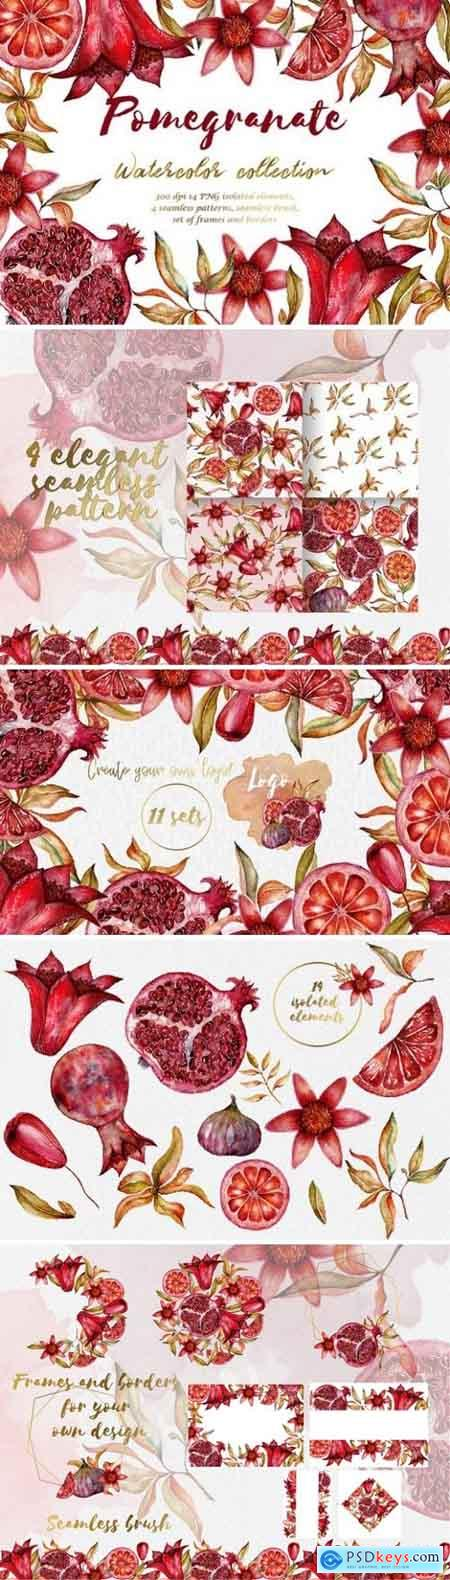 Floral collection of pomegranate